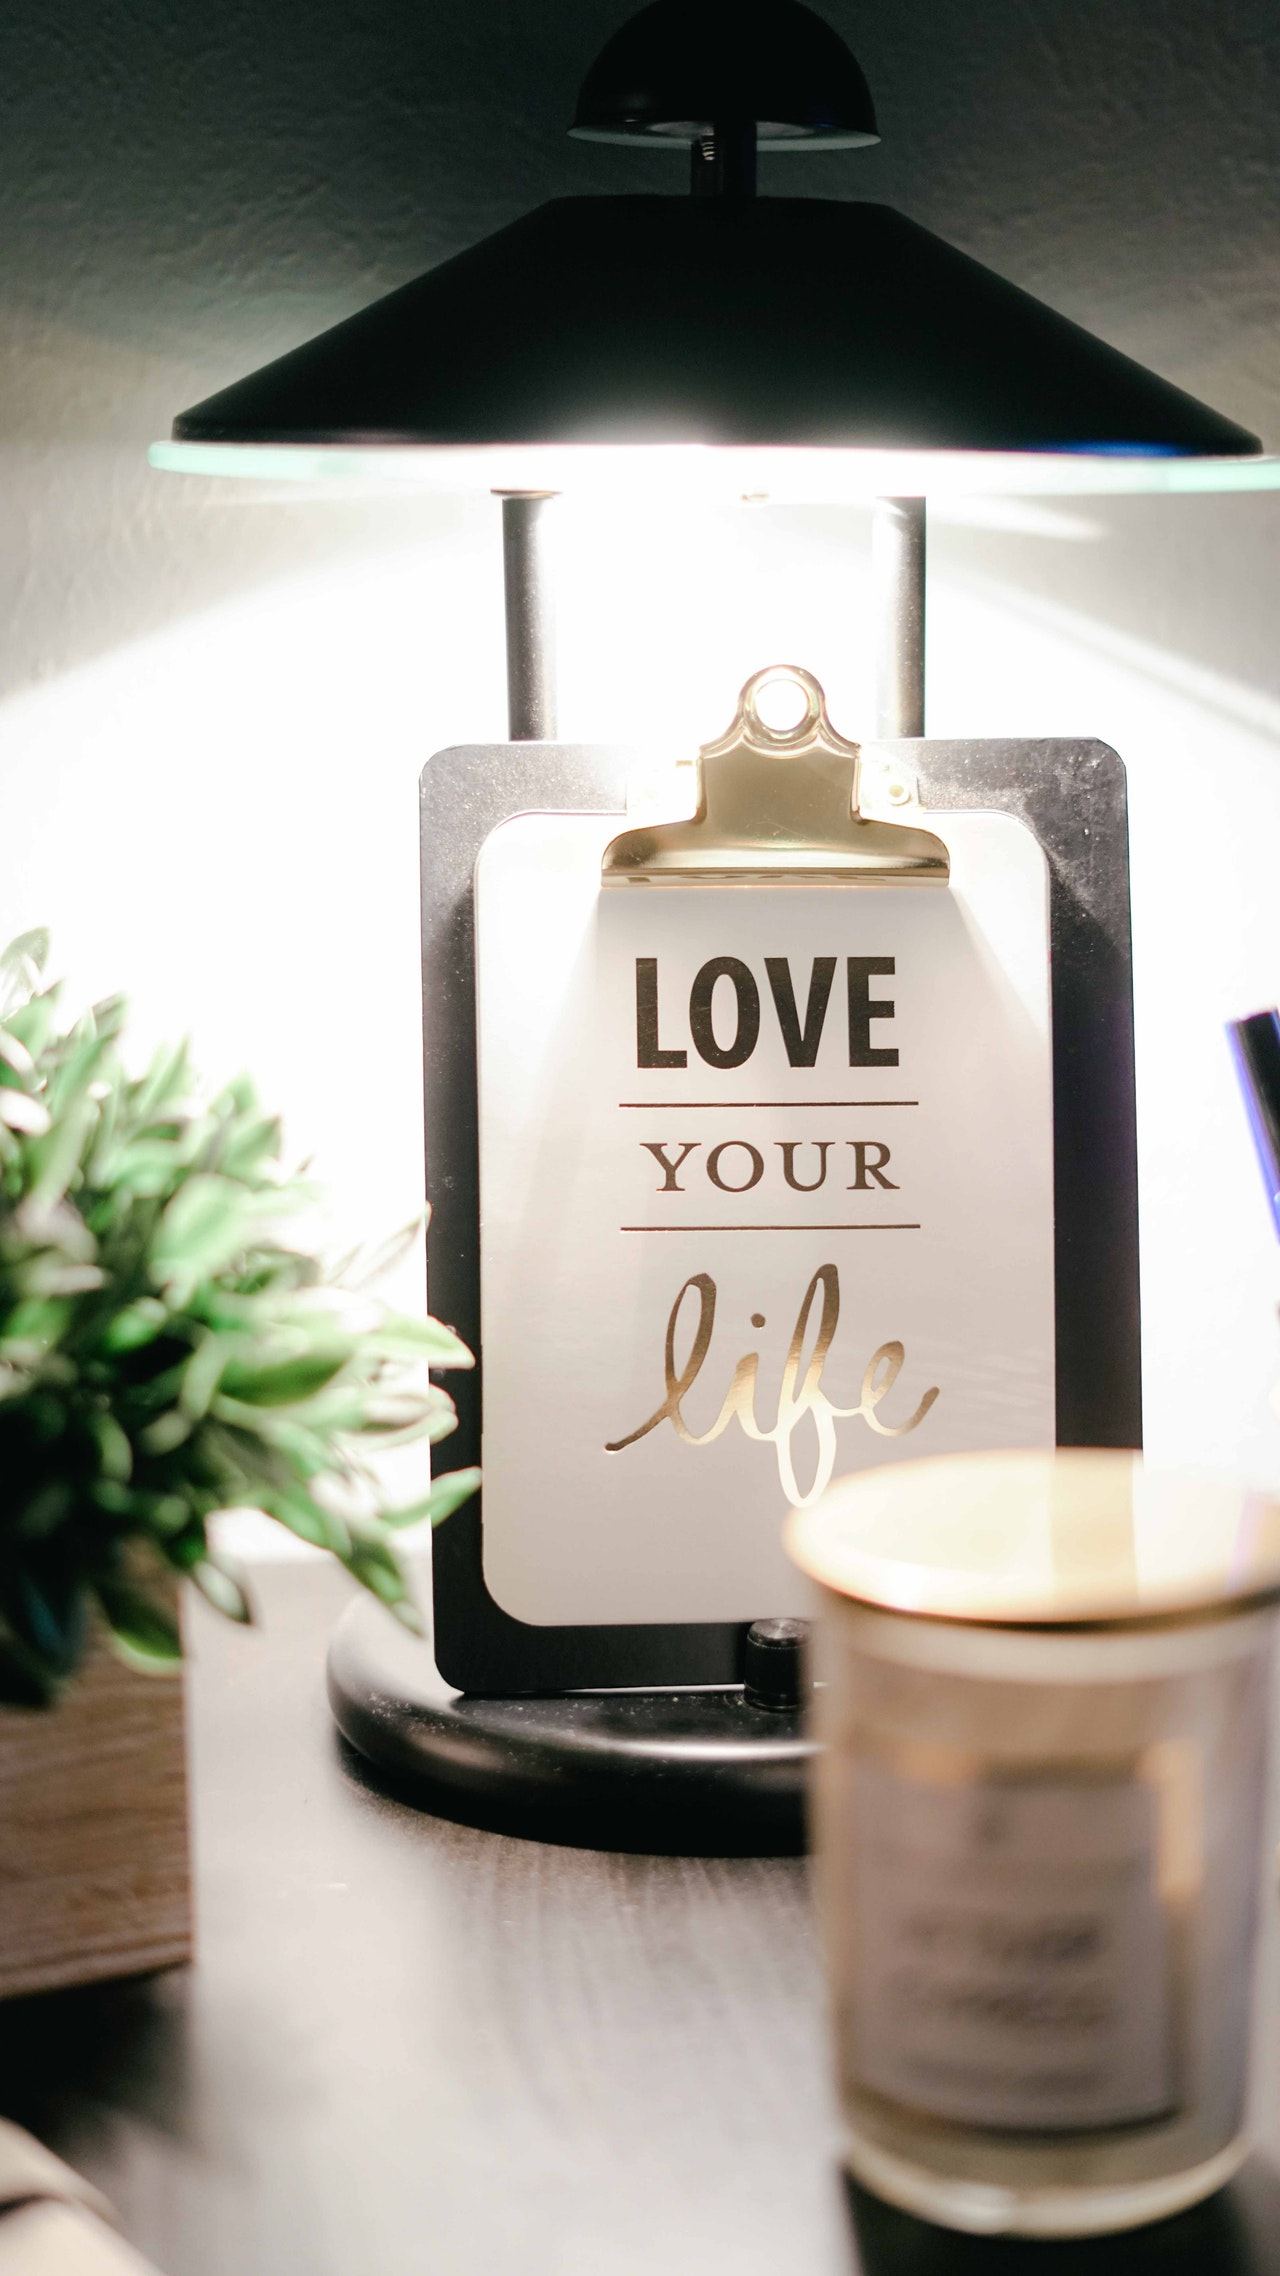 bright-candle-clipboard-811575.jpg